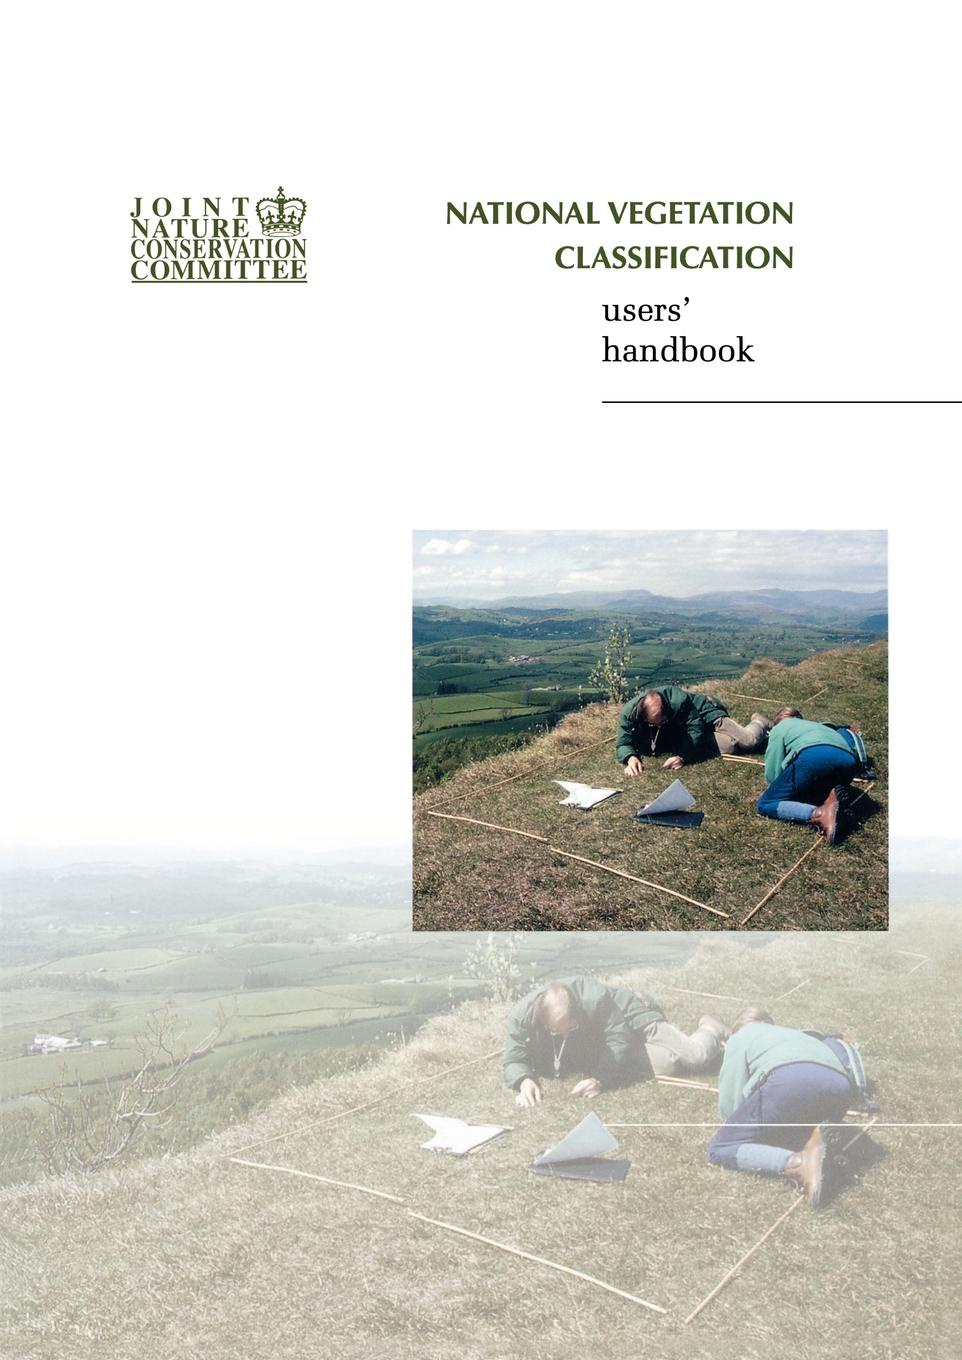 John S. Rodwell National Vegetation Classification - Users' Handbook vegetation hong 120